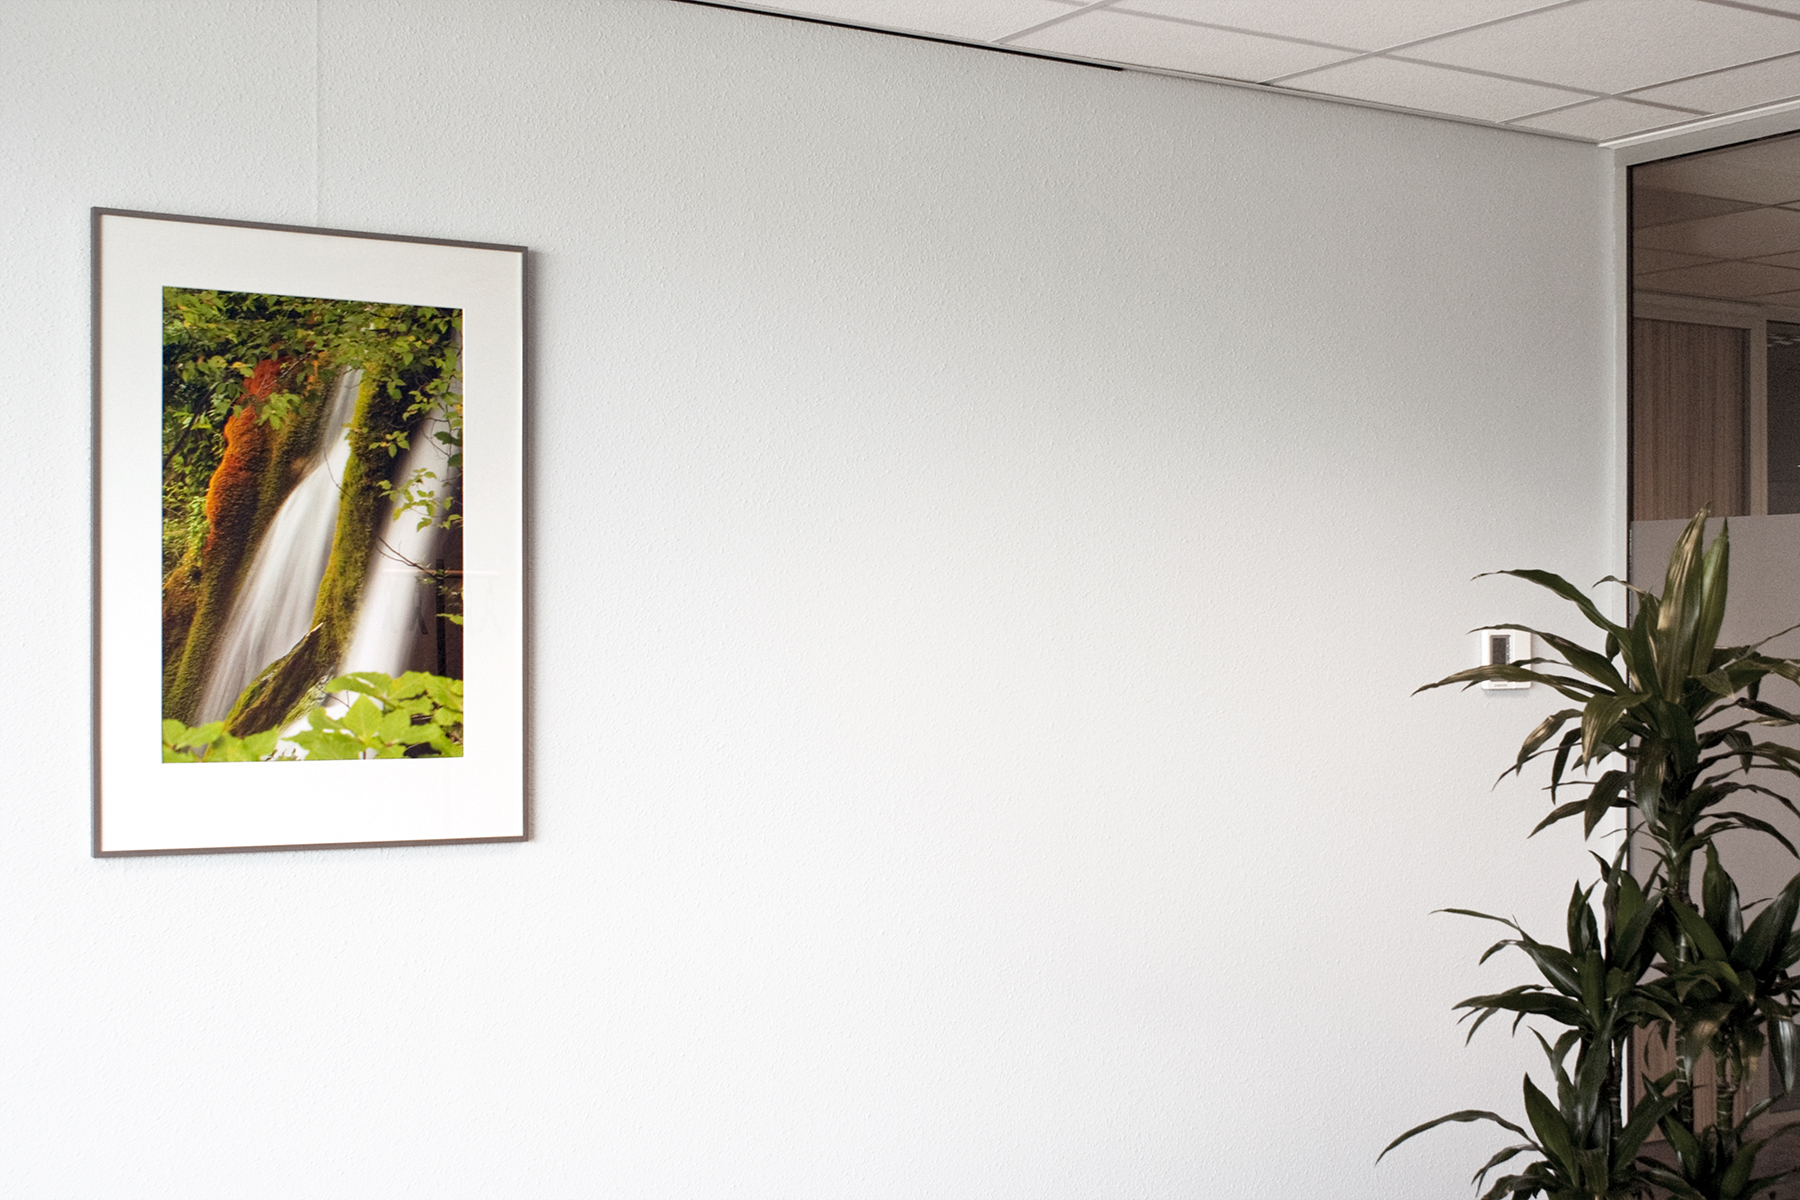 Commission for an accountancy office, Oud-Beijerland